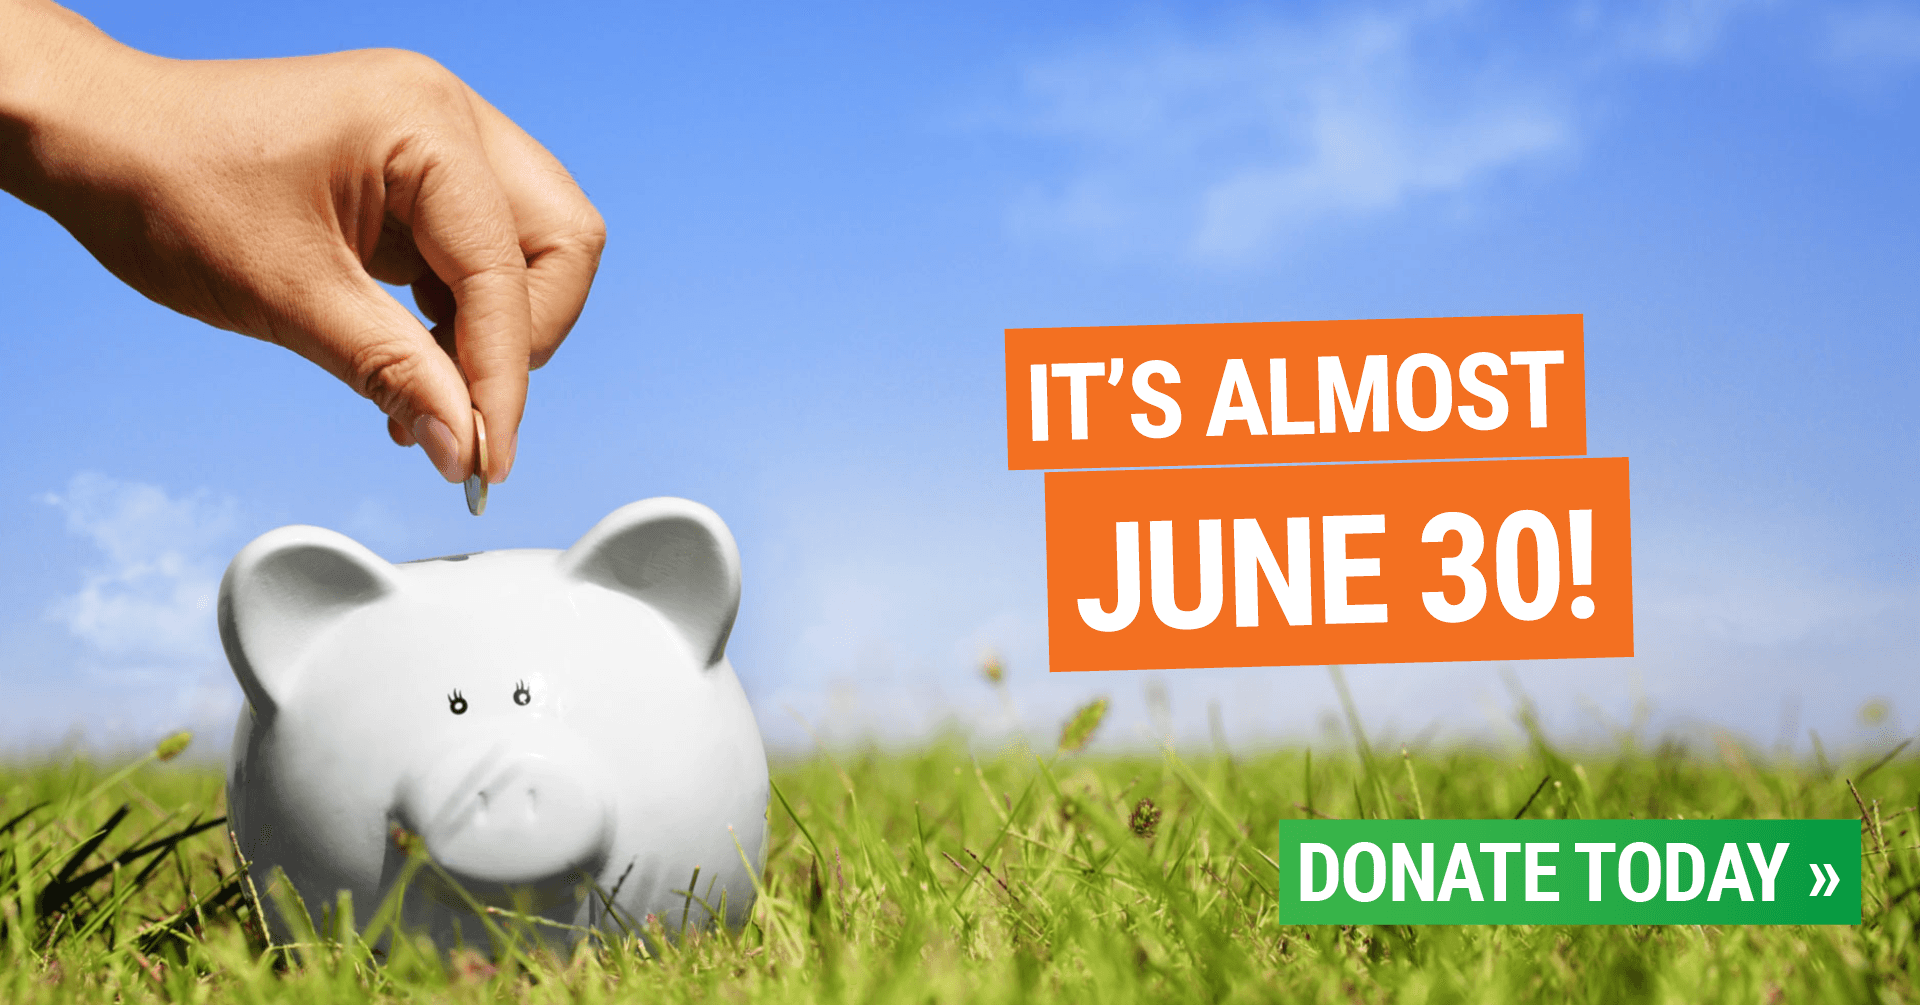 It's almost June 30! Donate today. [hand putting a coin into a piggy bank]